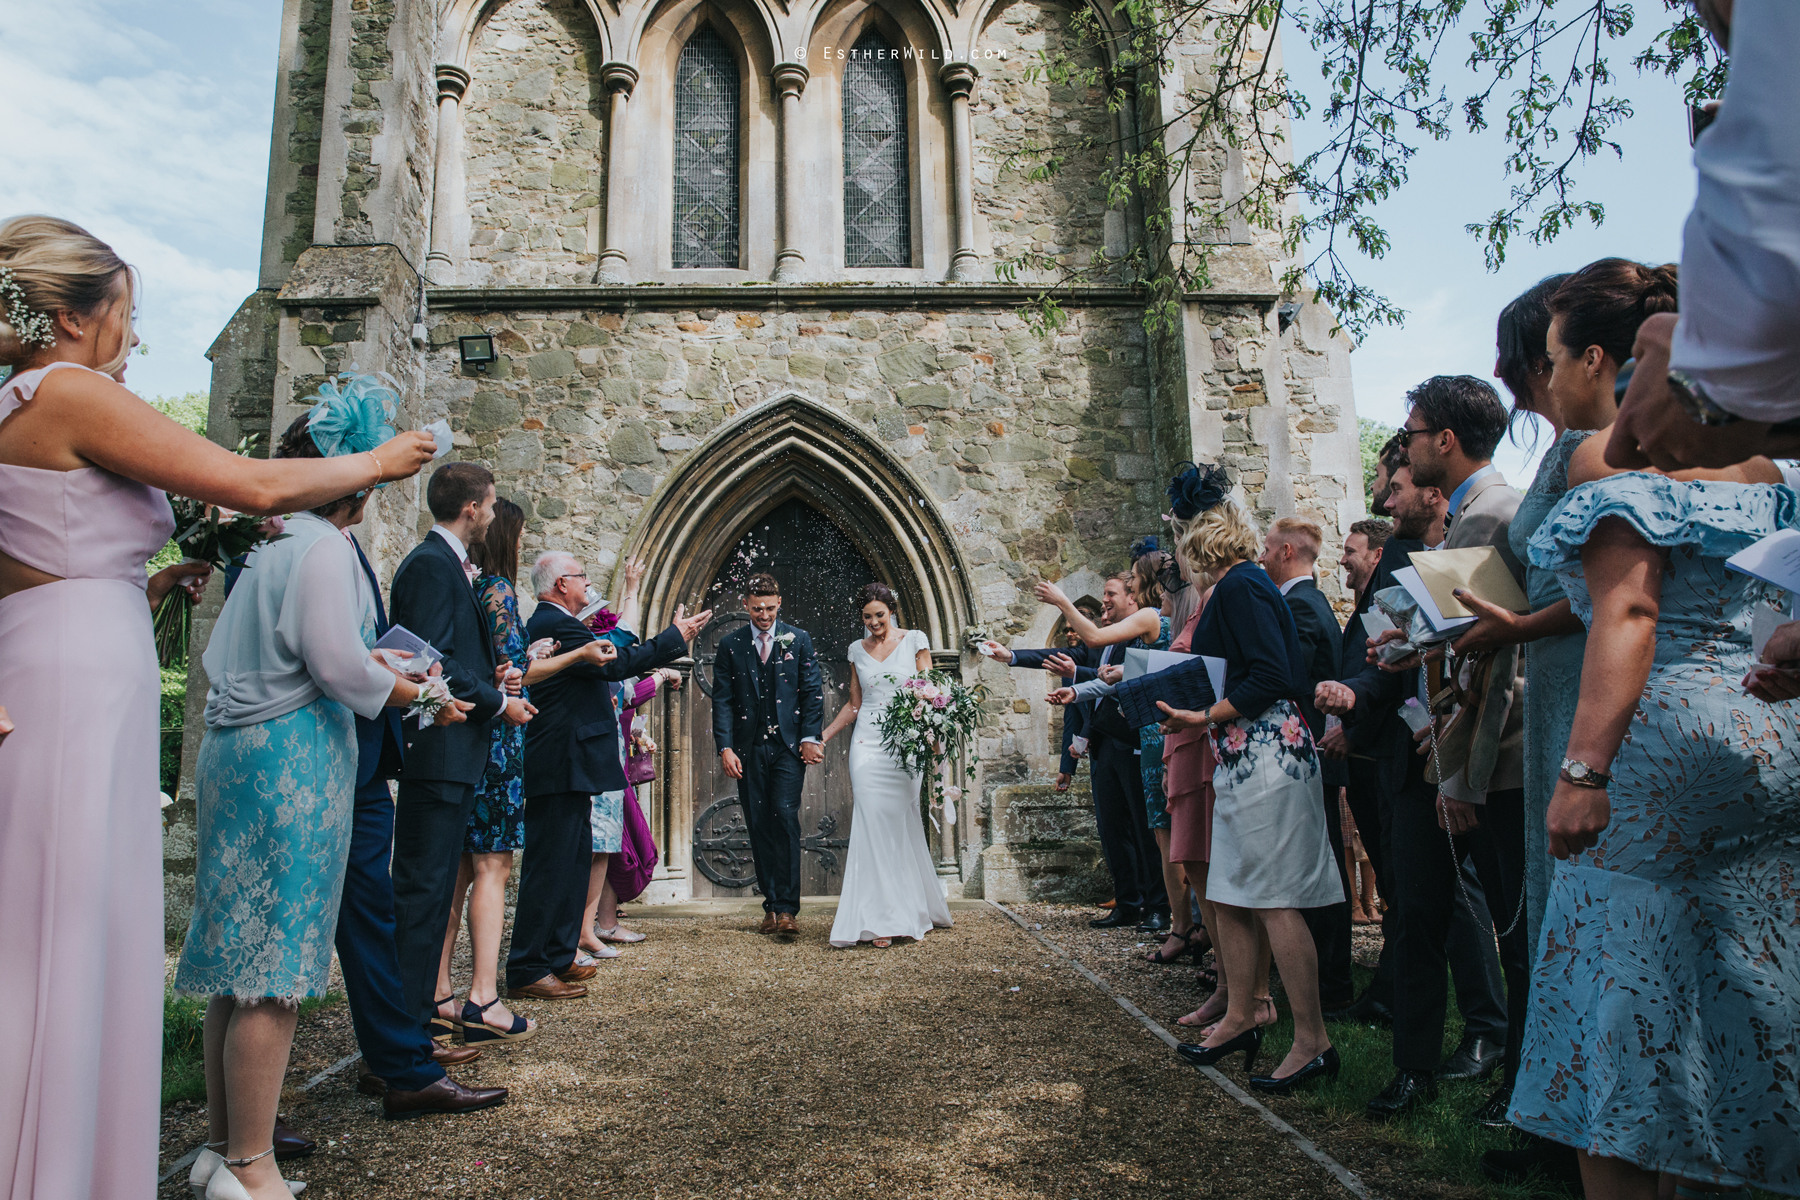 Wootton_Wedding_Copyright_Esther_Wild_Photographer_IMG_1213.jpg